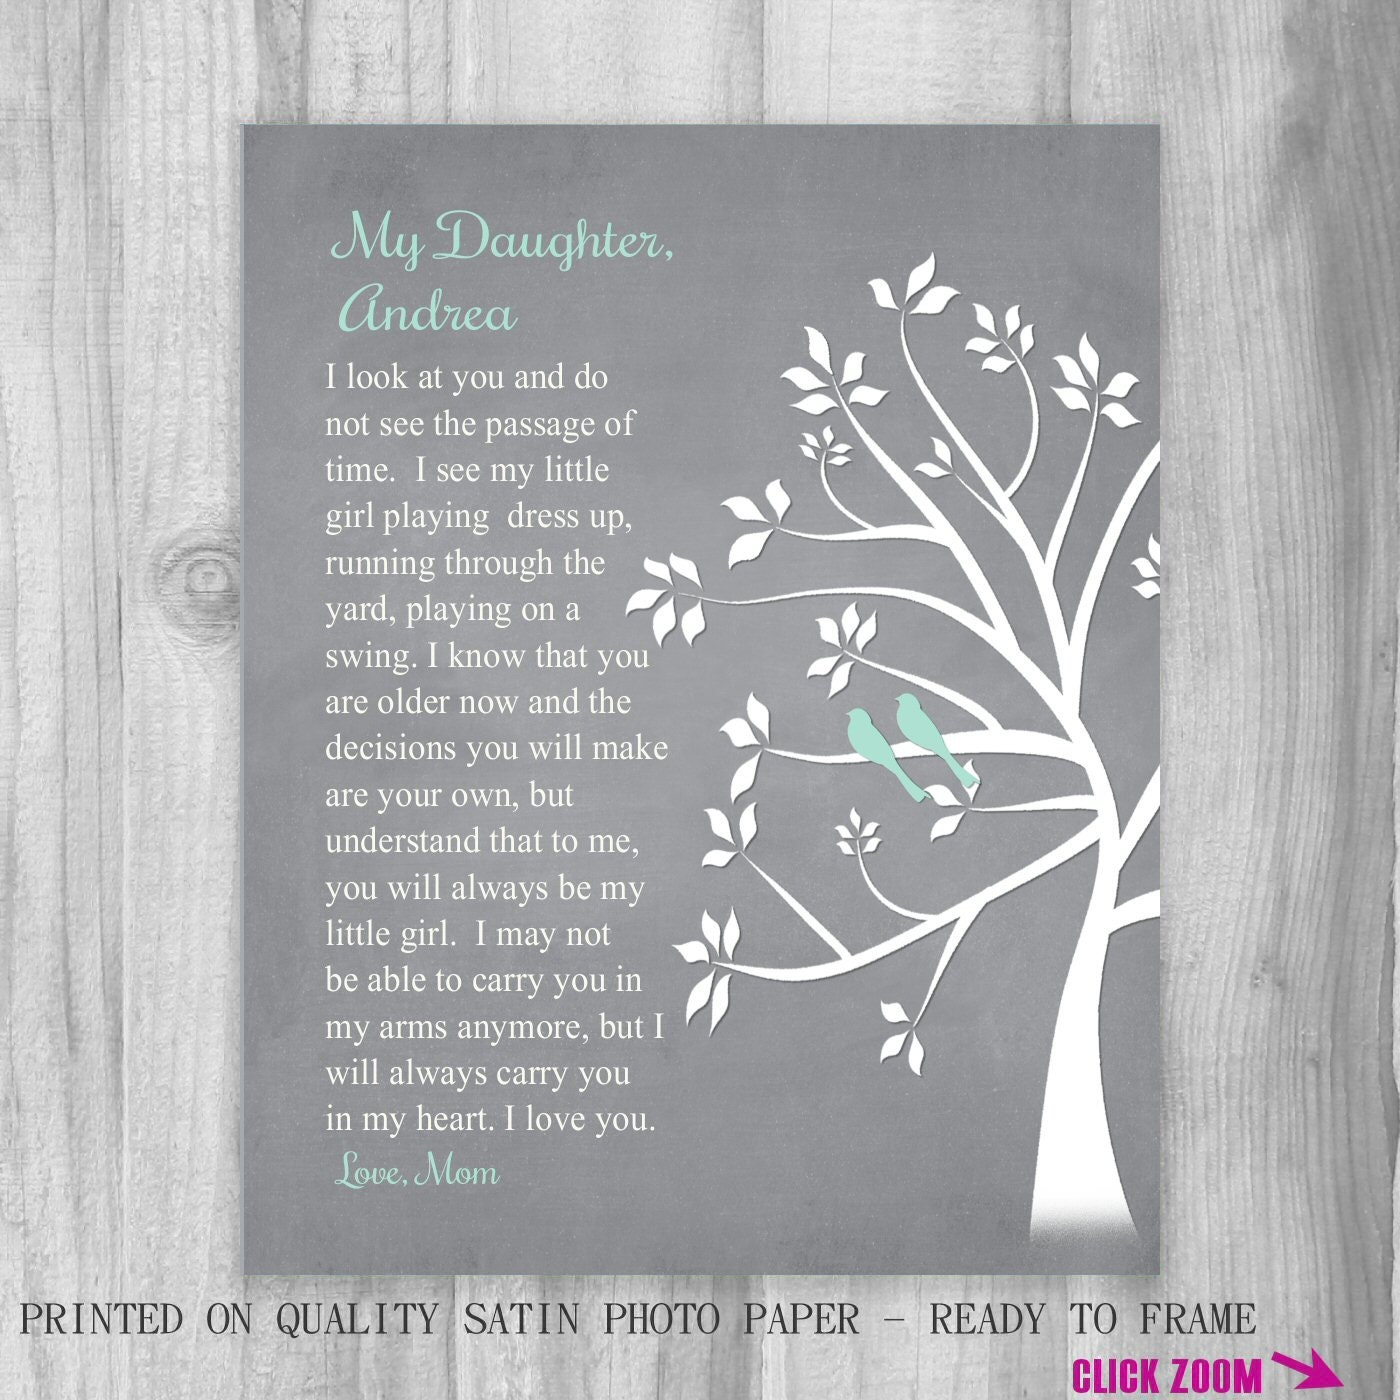 Ideas For Wedding Gift For Daughter : Ideas Gifts From Mother To Daughter On Wedding Day wedding day gift ...